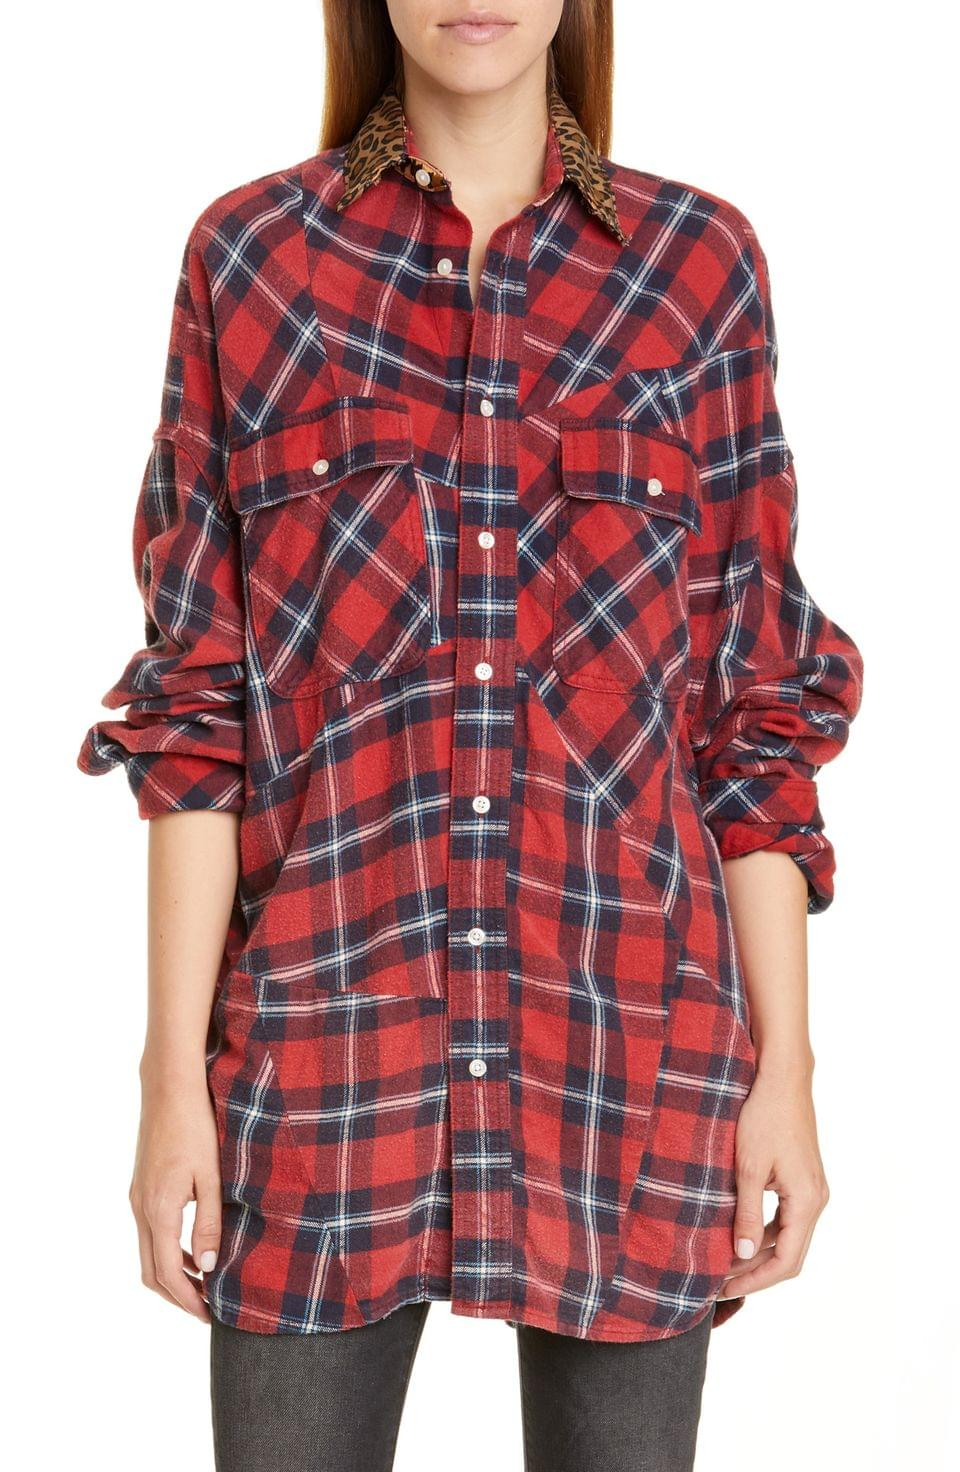 Women's R13 Patchwork Plaid Shirt with Leopard Print Collar